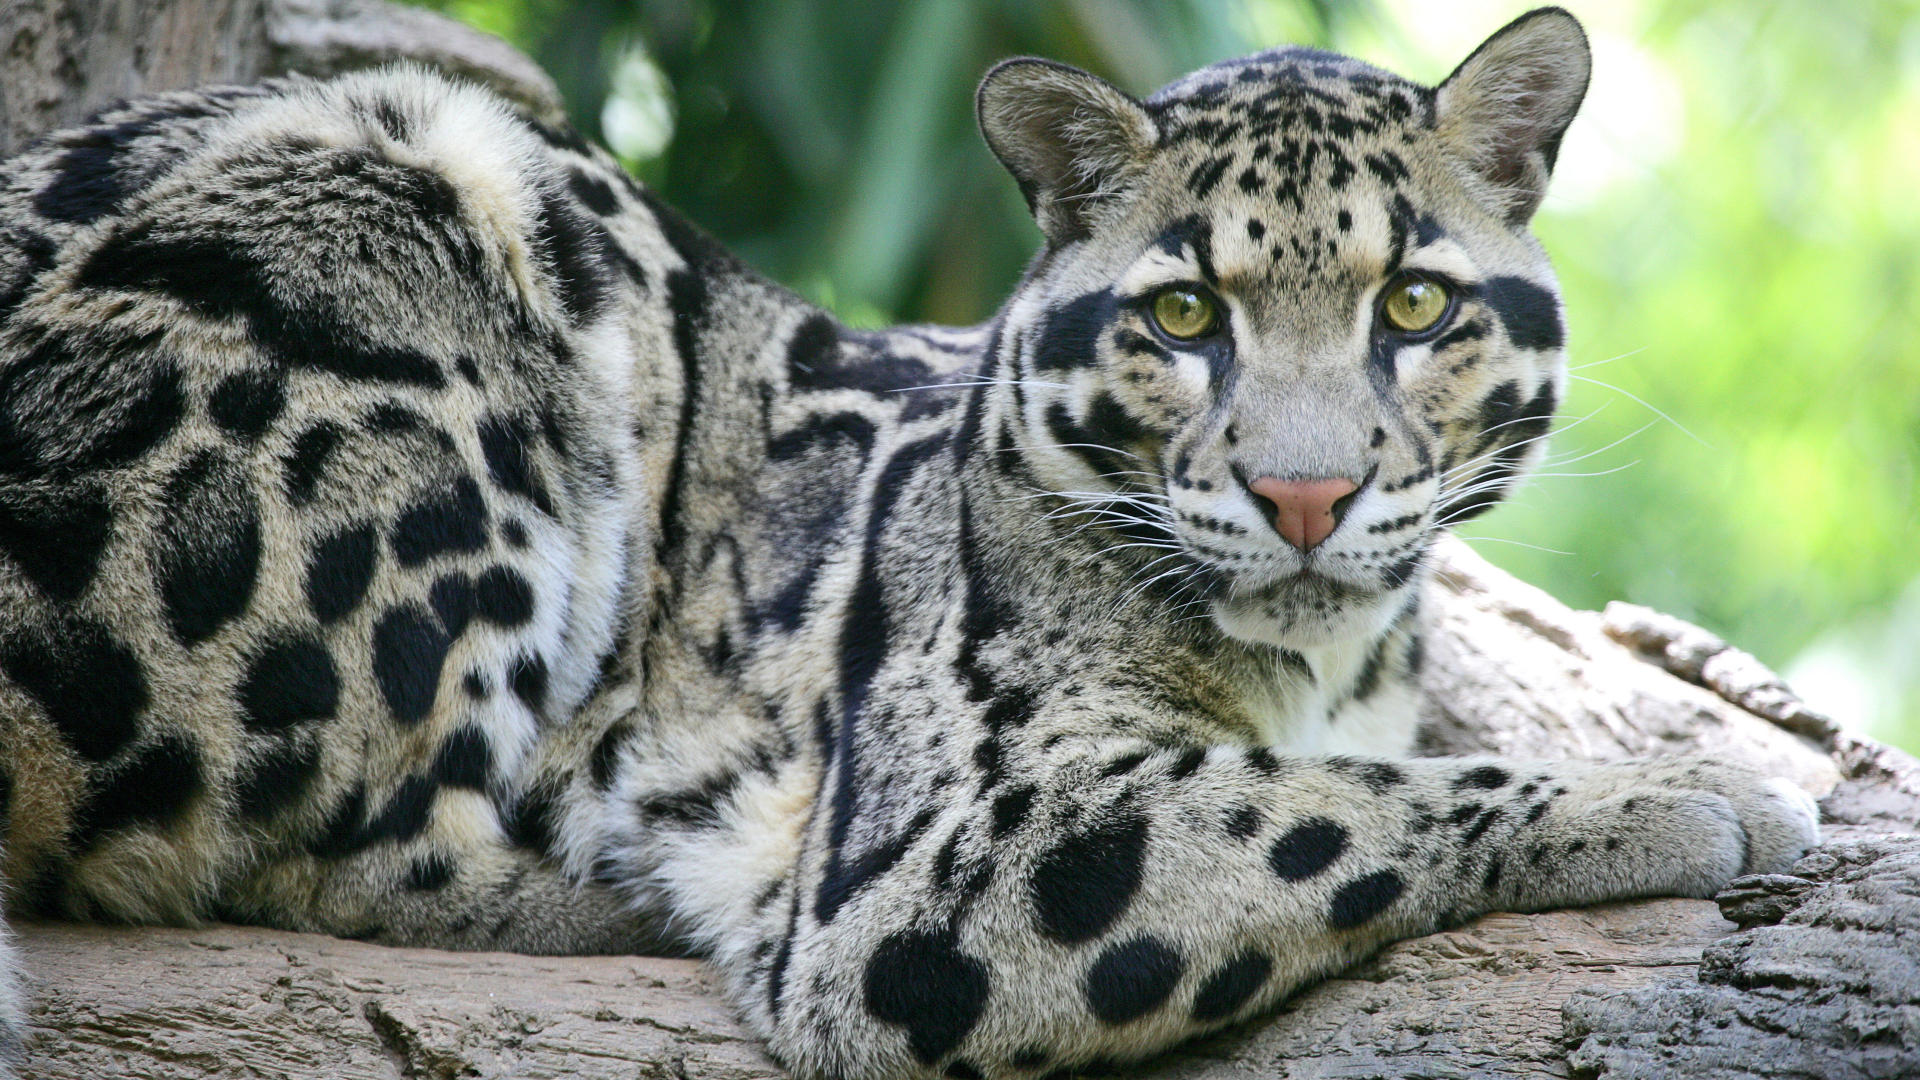 Clouded Leopard Wallpaper Hd Wallpapers Download 1920x1080